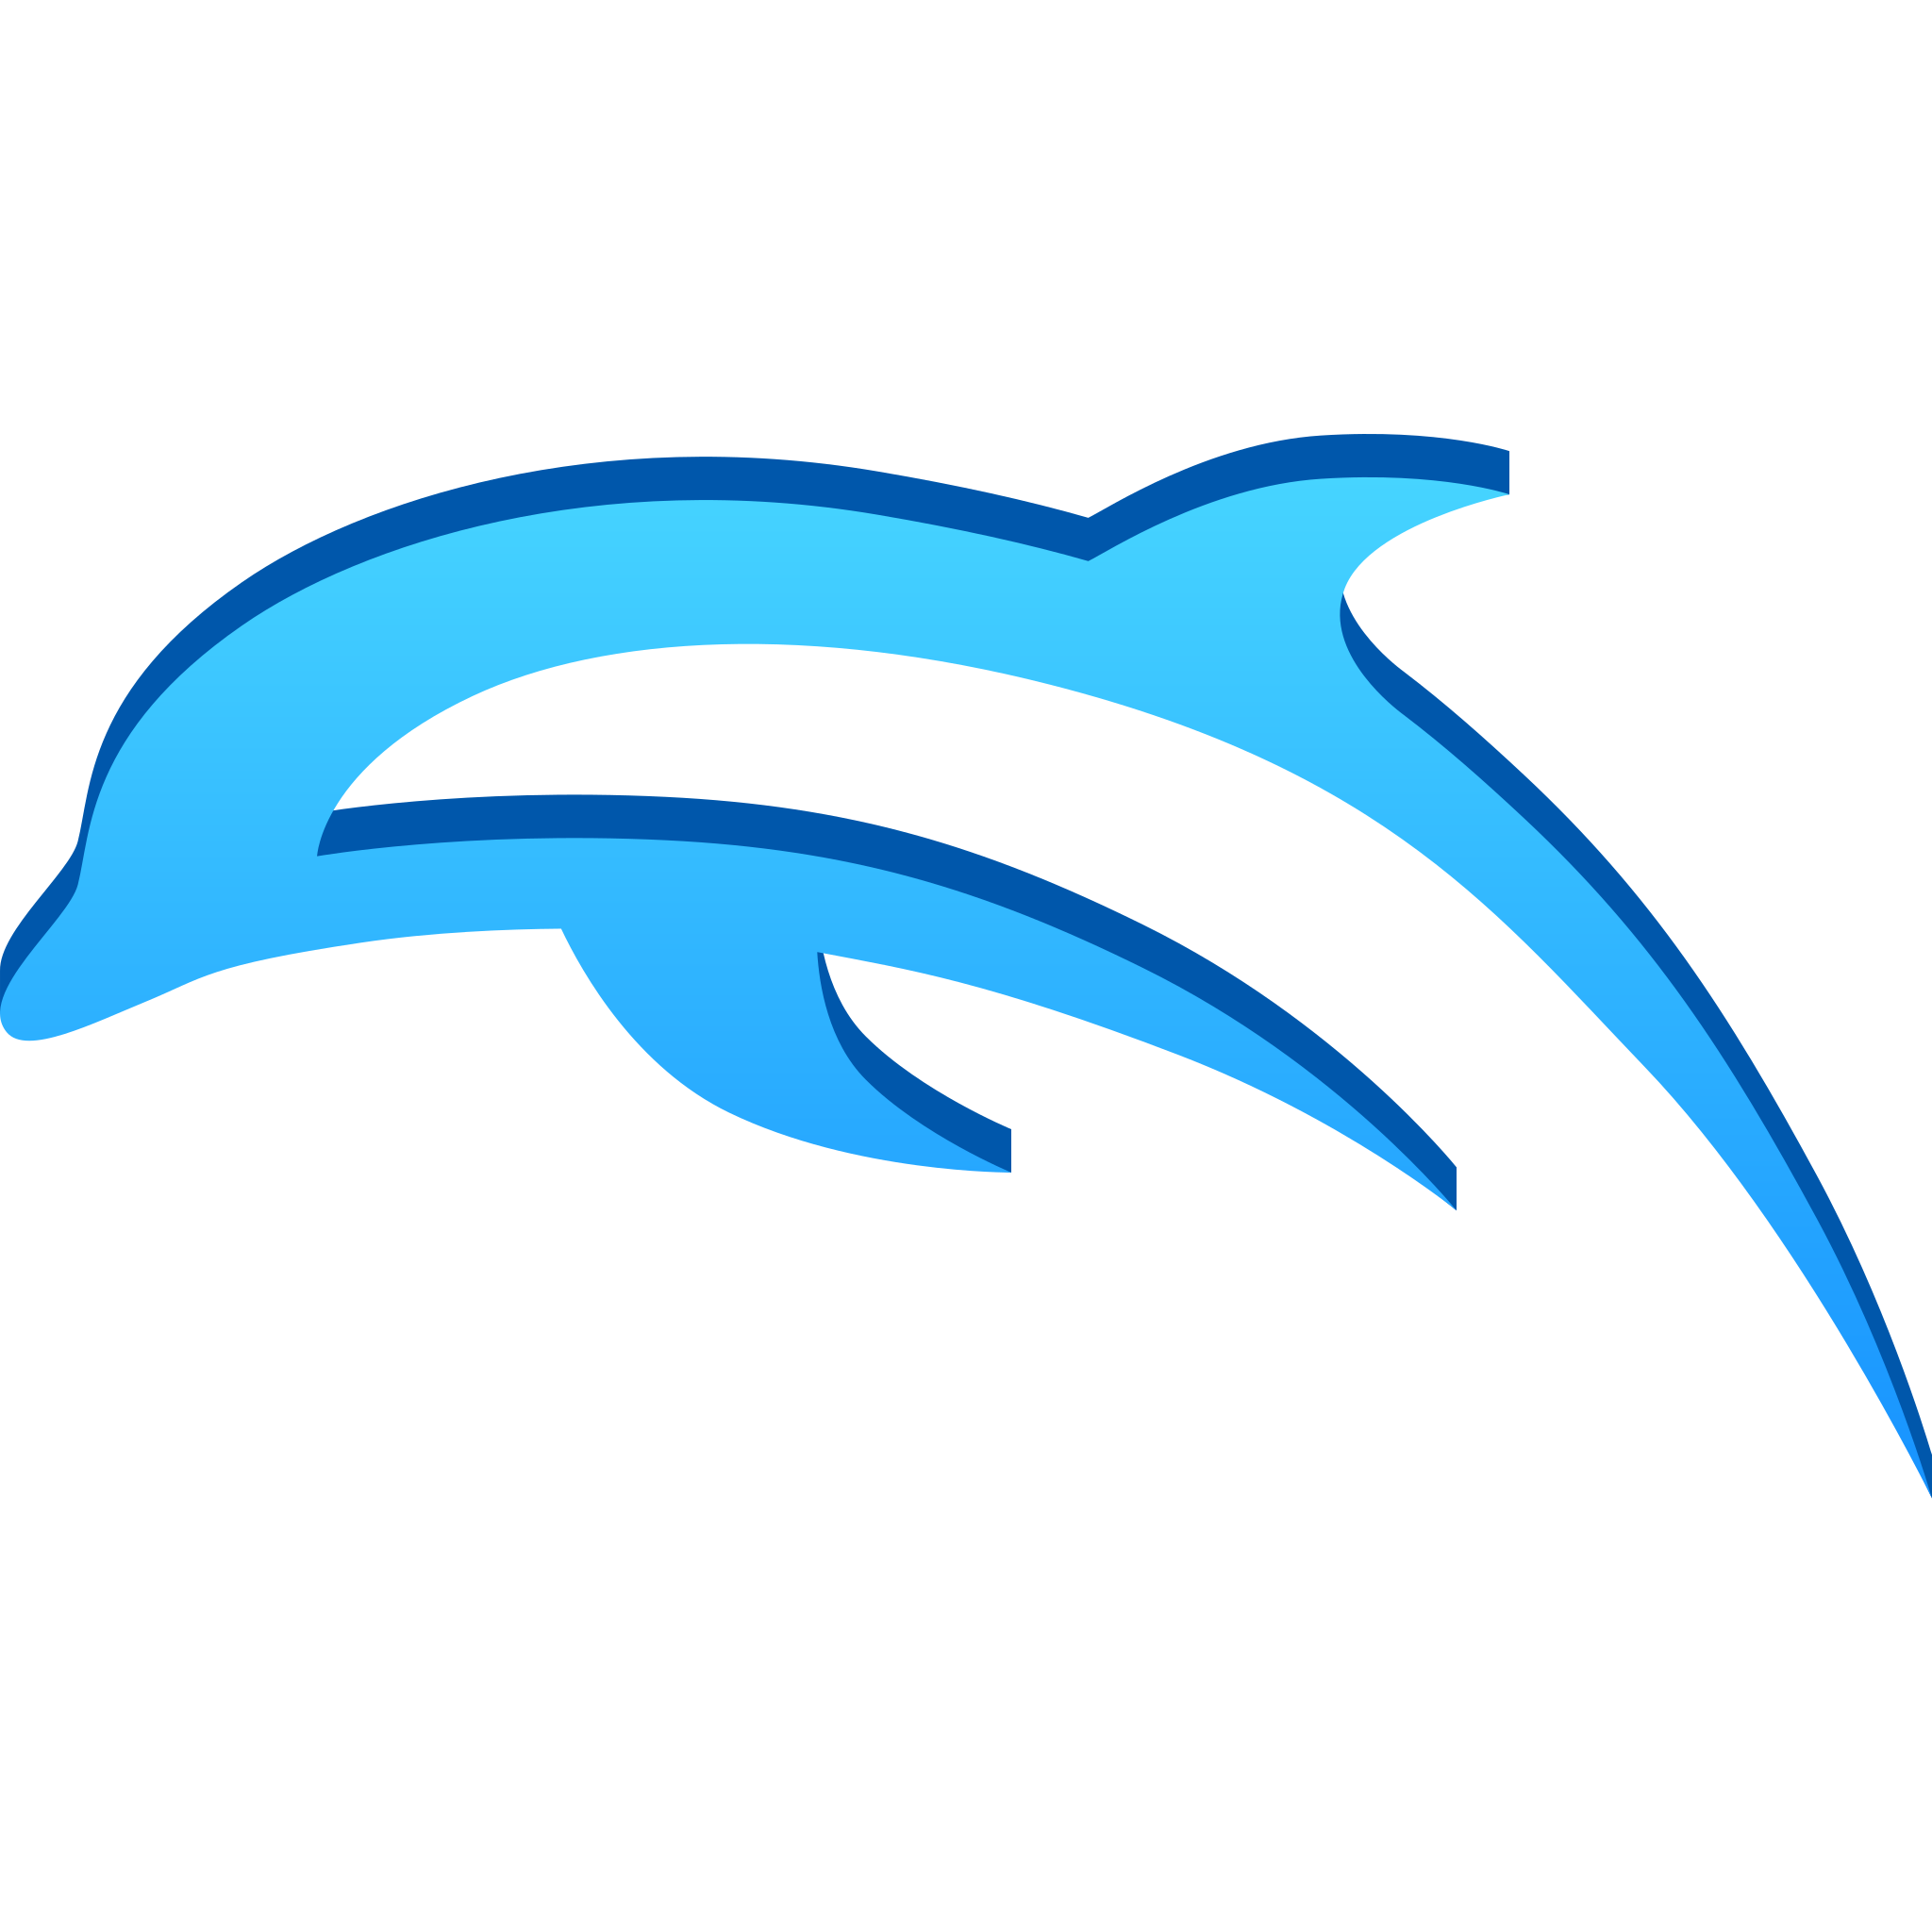 Dolphin logo png. File svg wikimedia commons